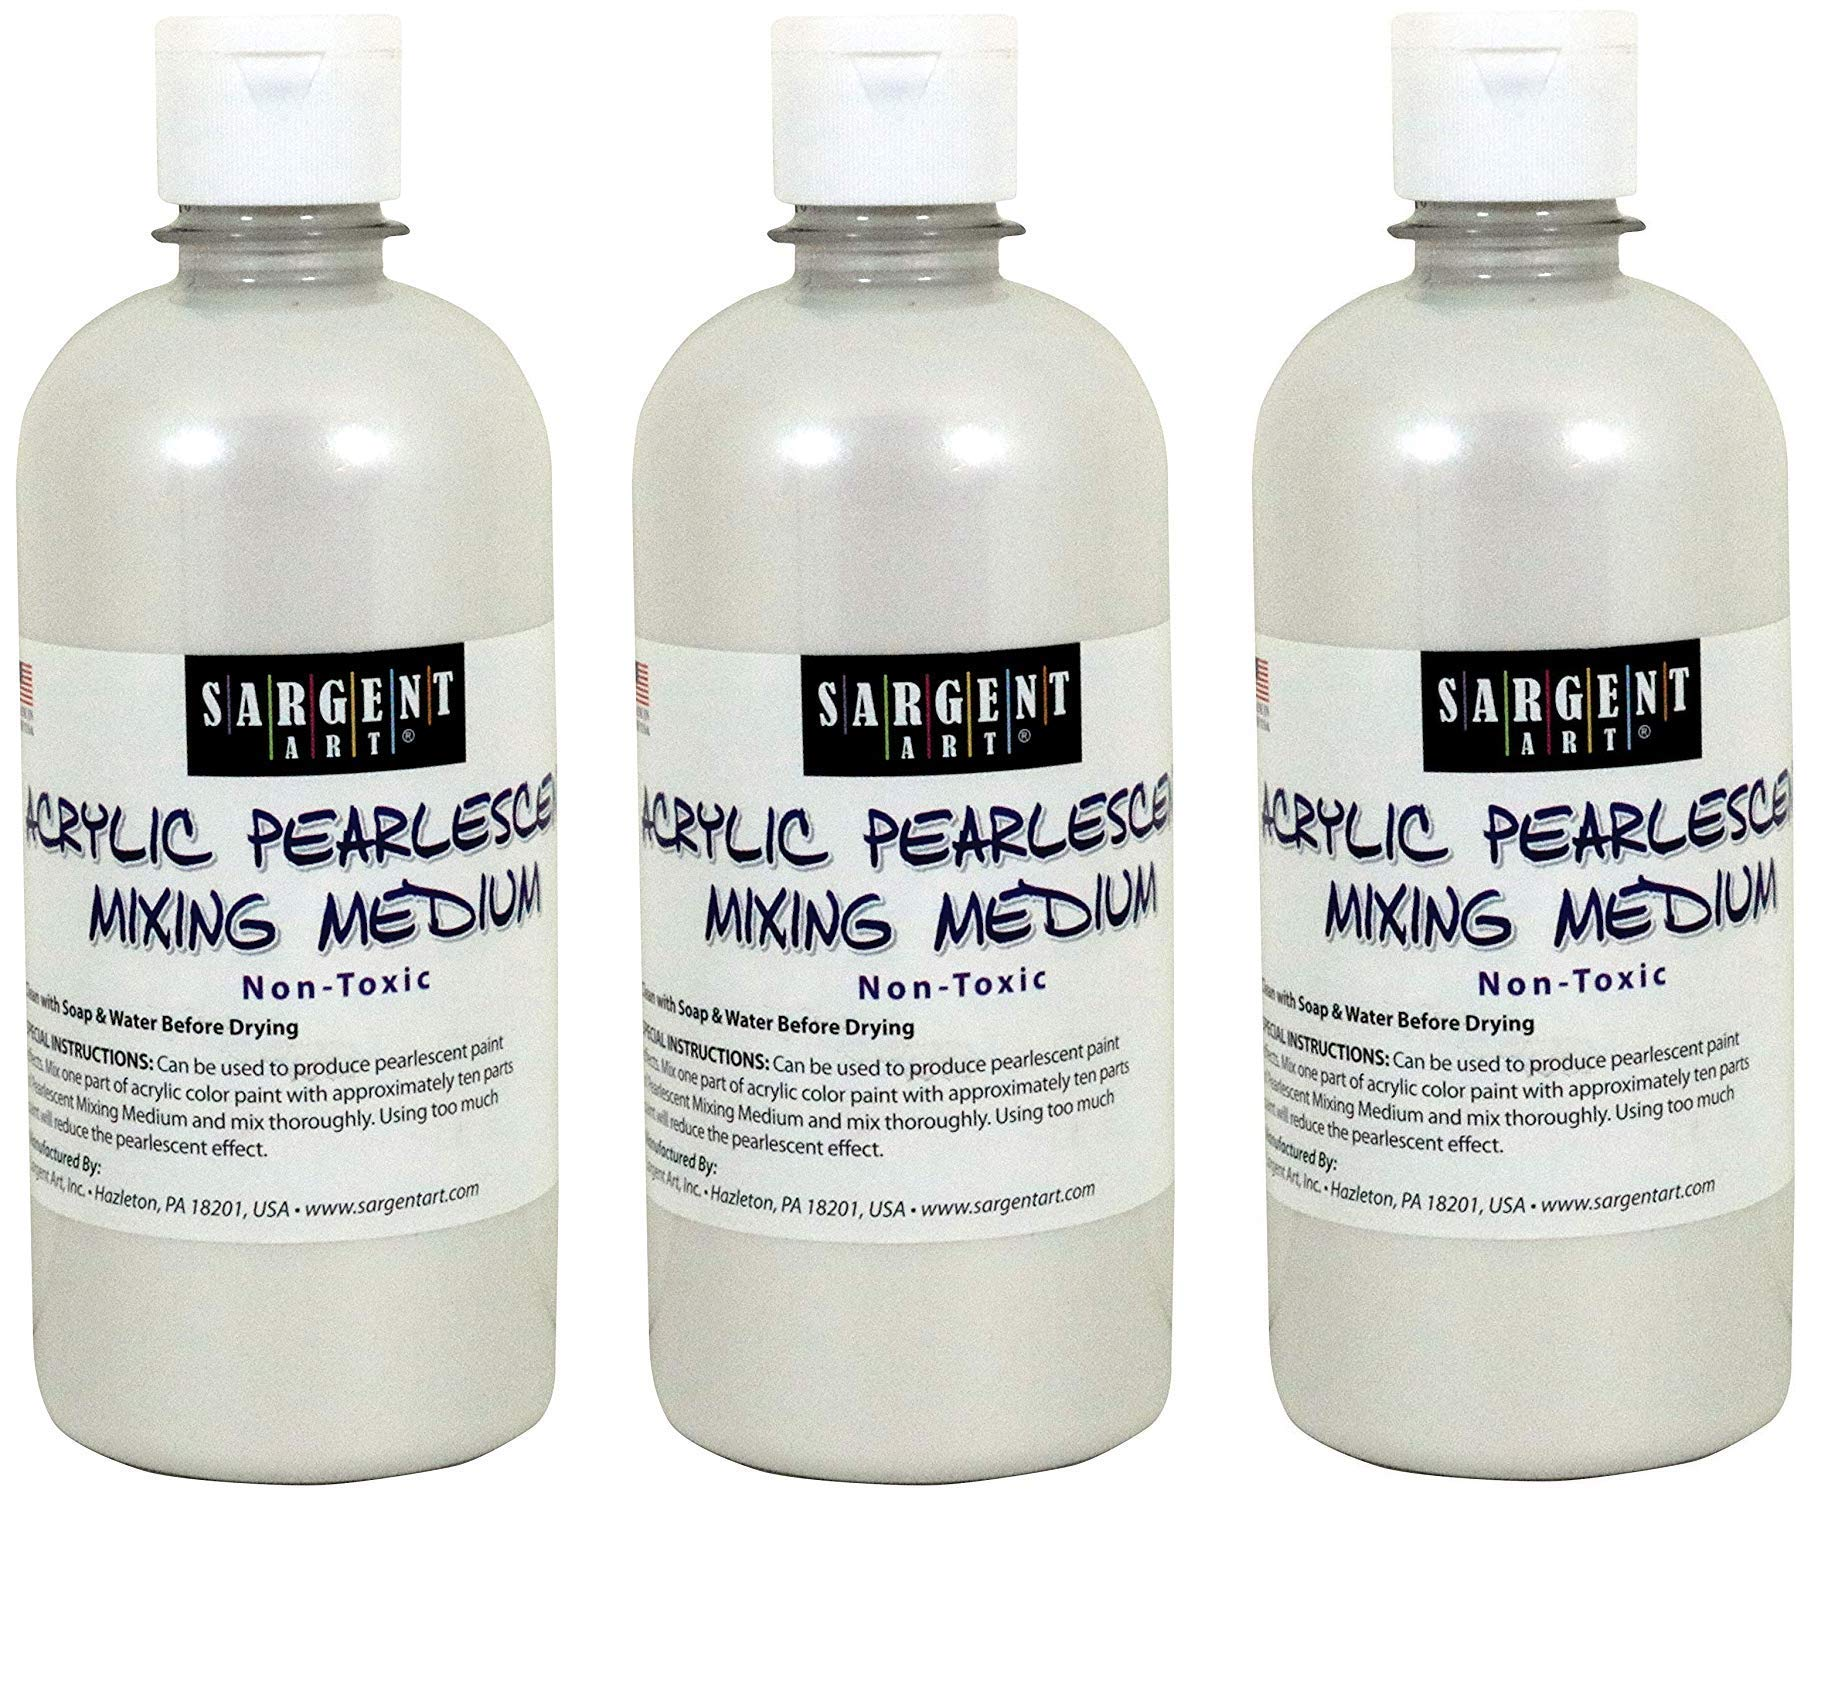 Sargent Art 22-8813 16-Ounce Pearlescent Mixing Medium (3-Pack)